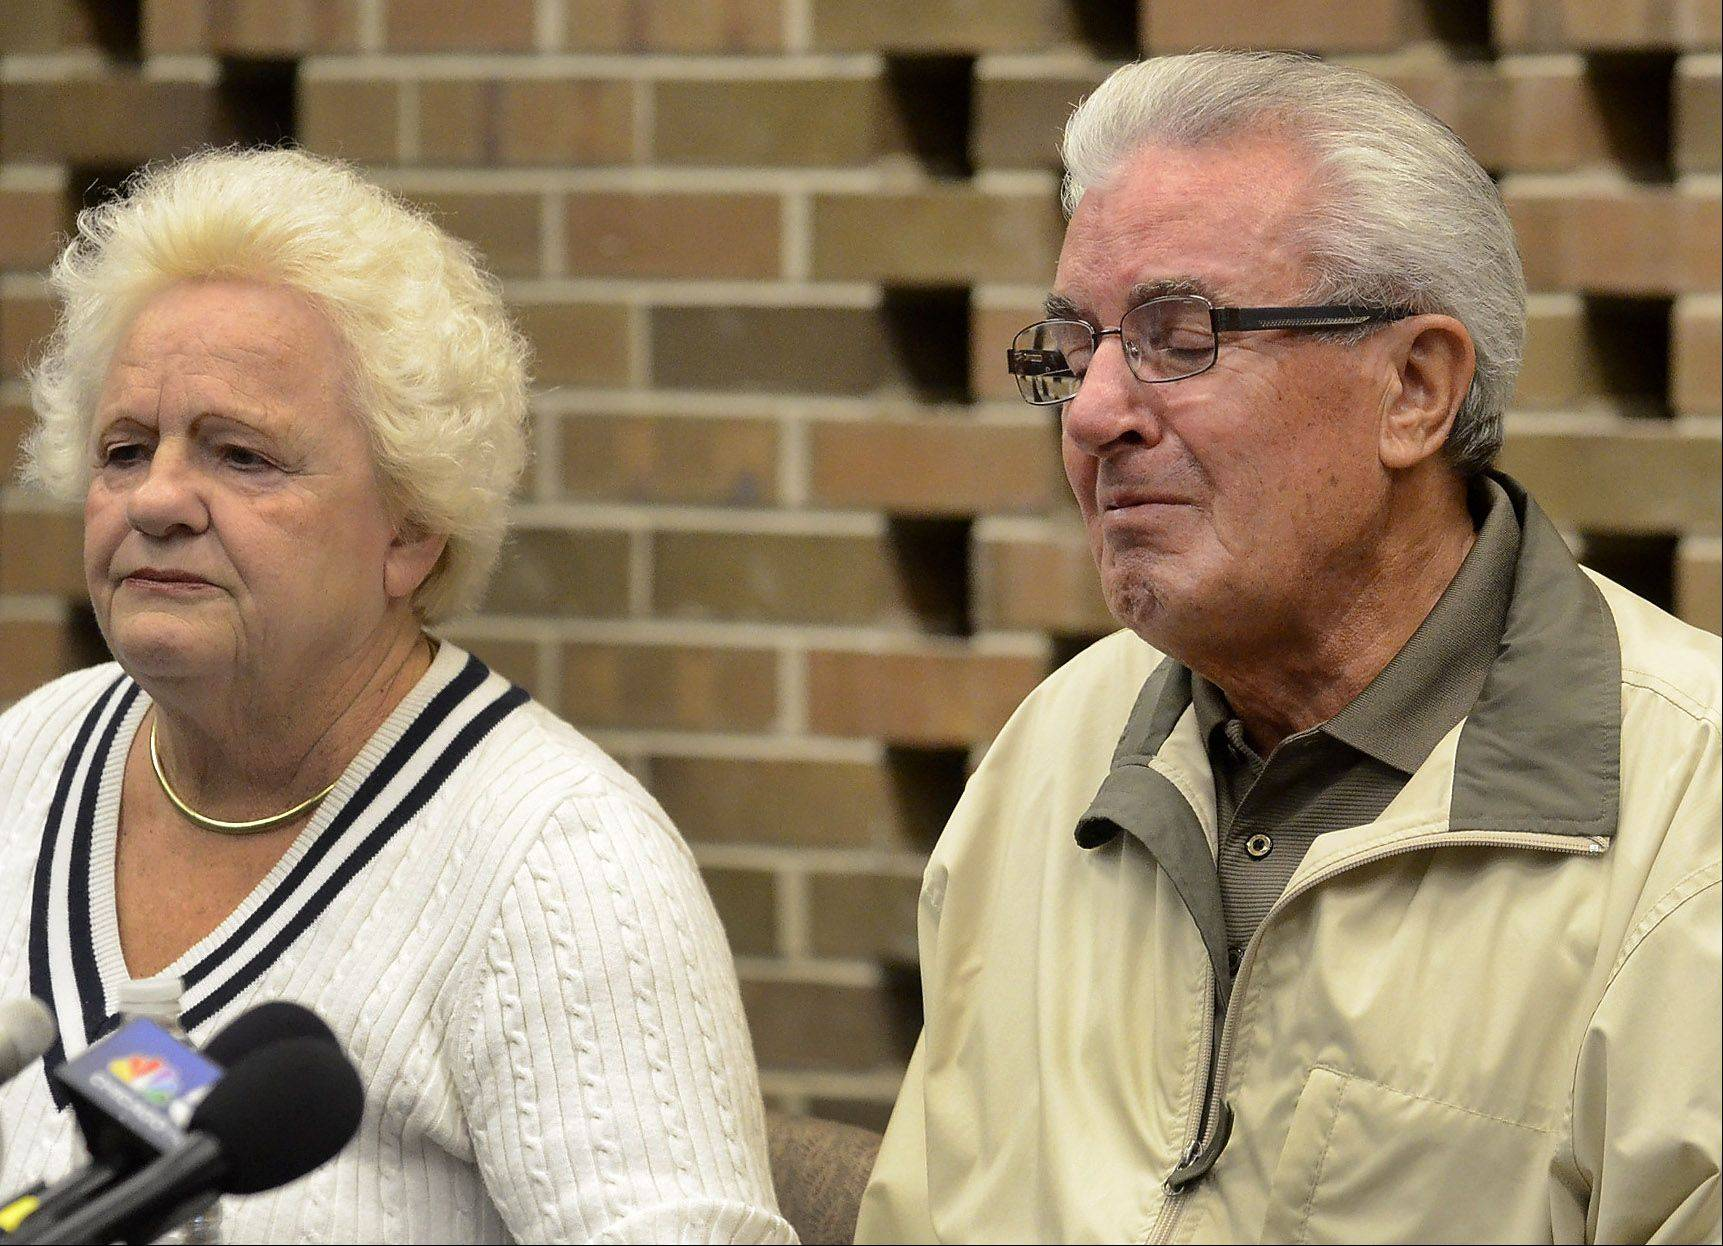 Tony and Jadwiga Dzierzak, parents of Beata Candre, made a tearful appeal Wednesday to their daughter, who went missing from her Schaumburg home Oct. 11. Authorities believe Candre left voluntarily.